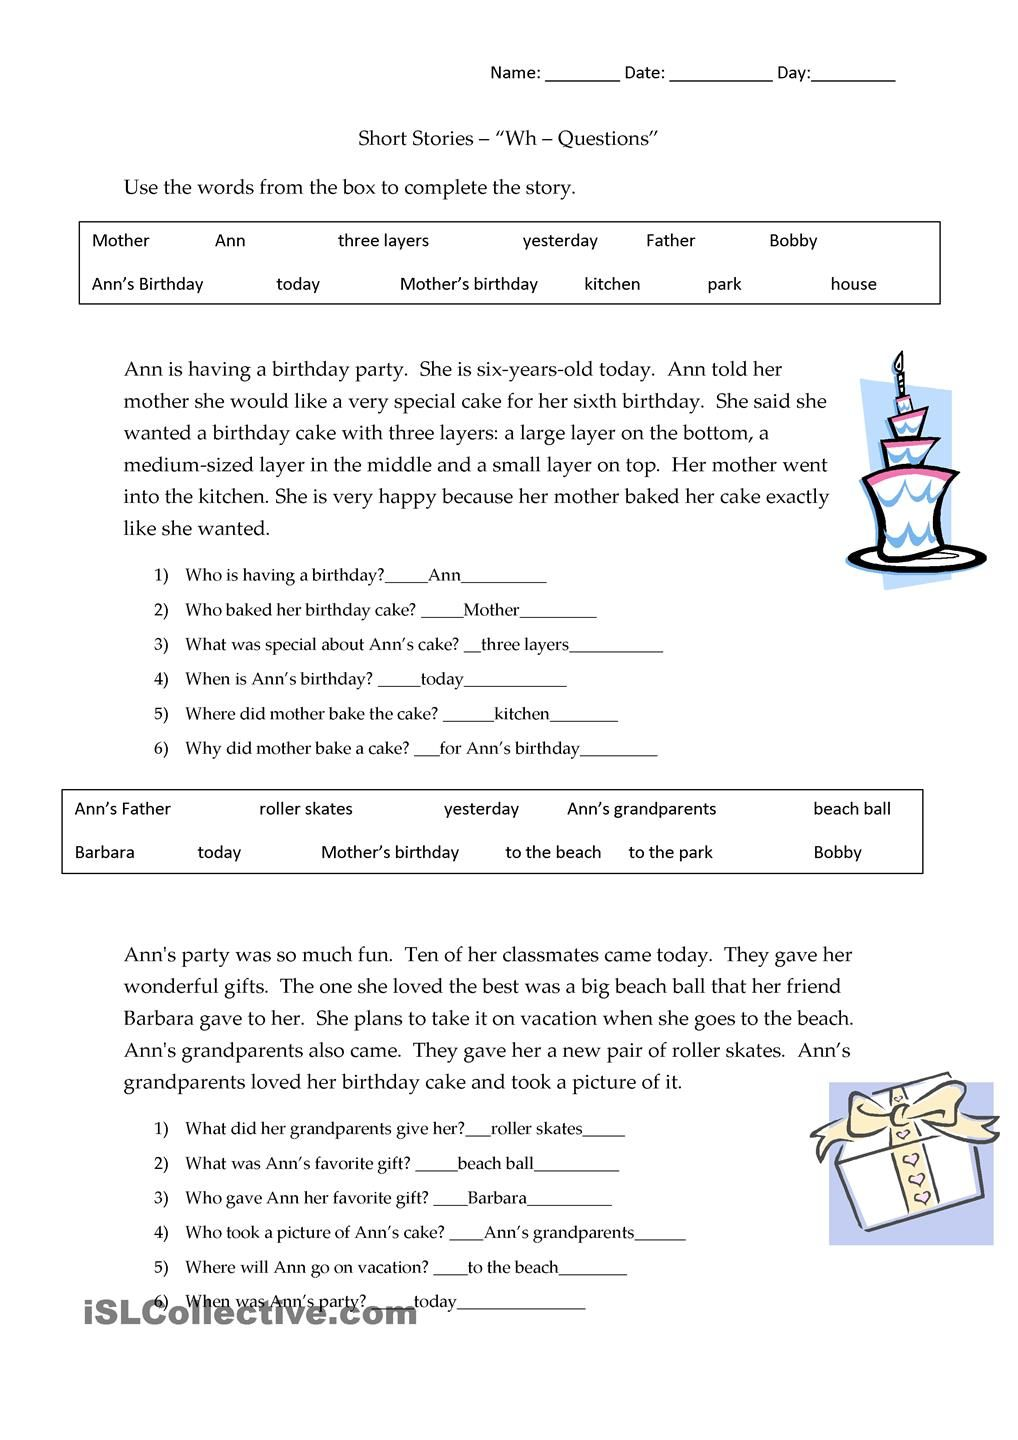 Short Stories Wh-questions - answers   Wh questions worksheets [ 1440 x 1018 Pixel ]